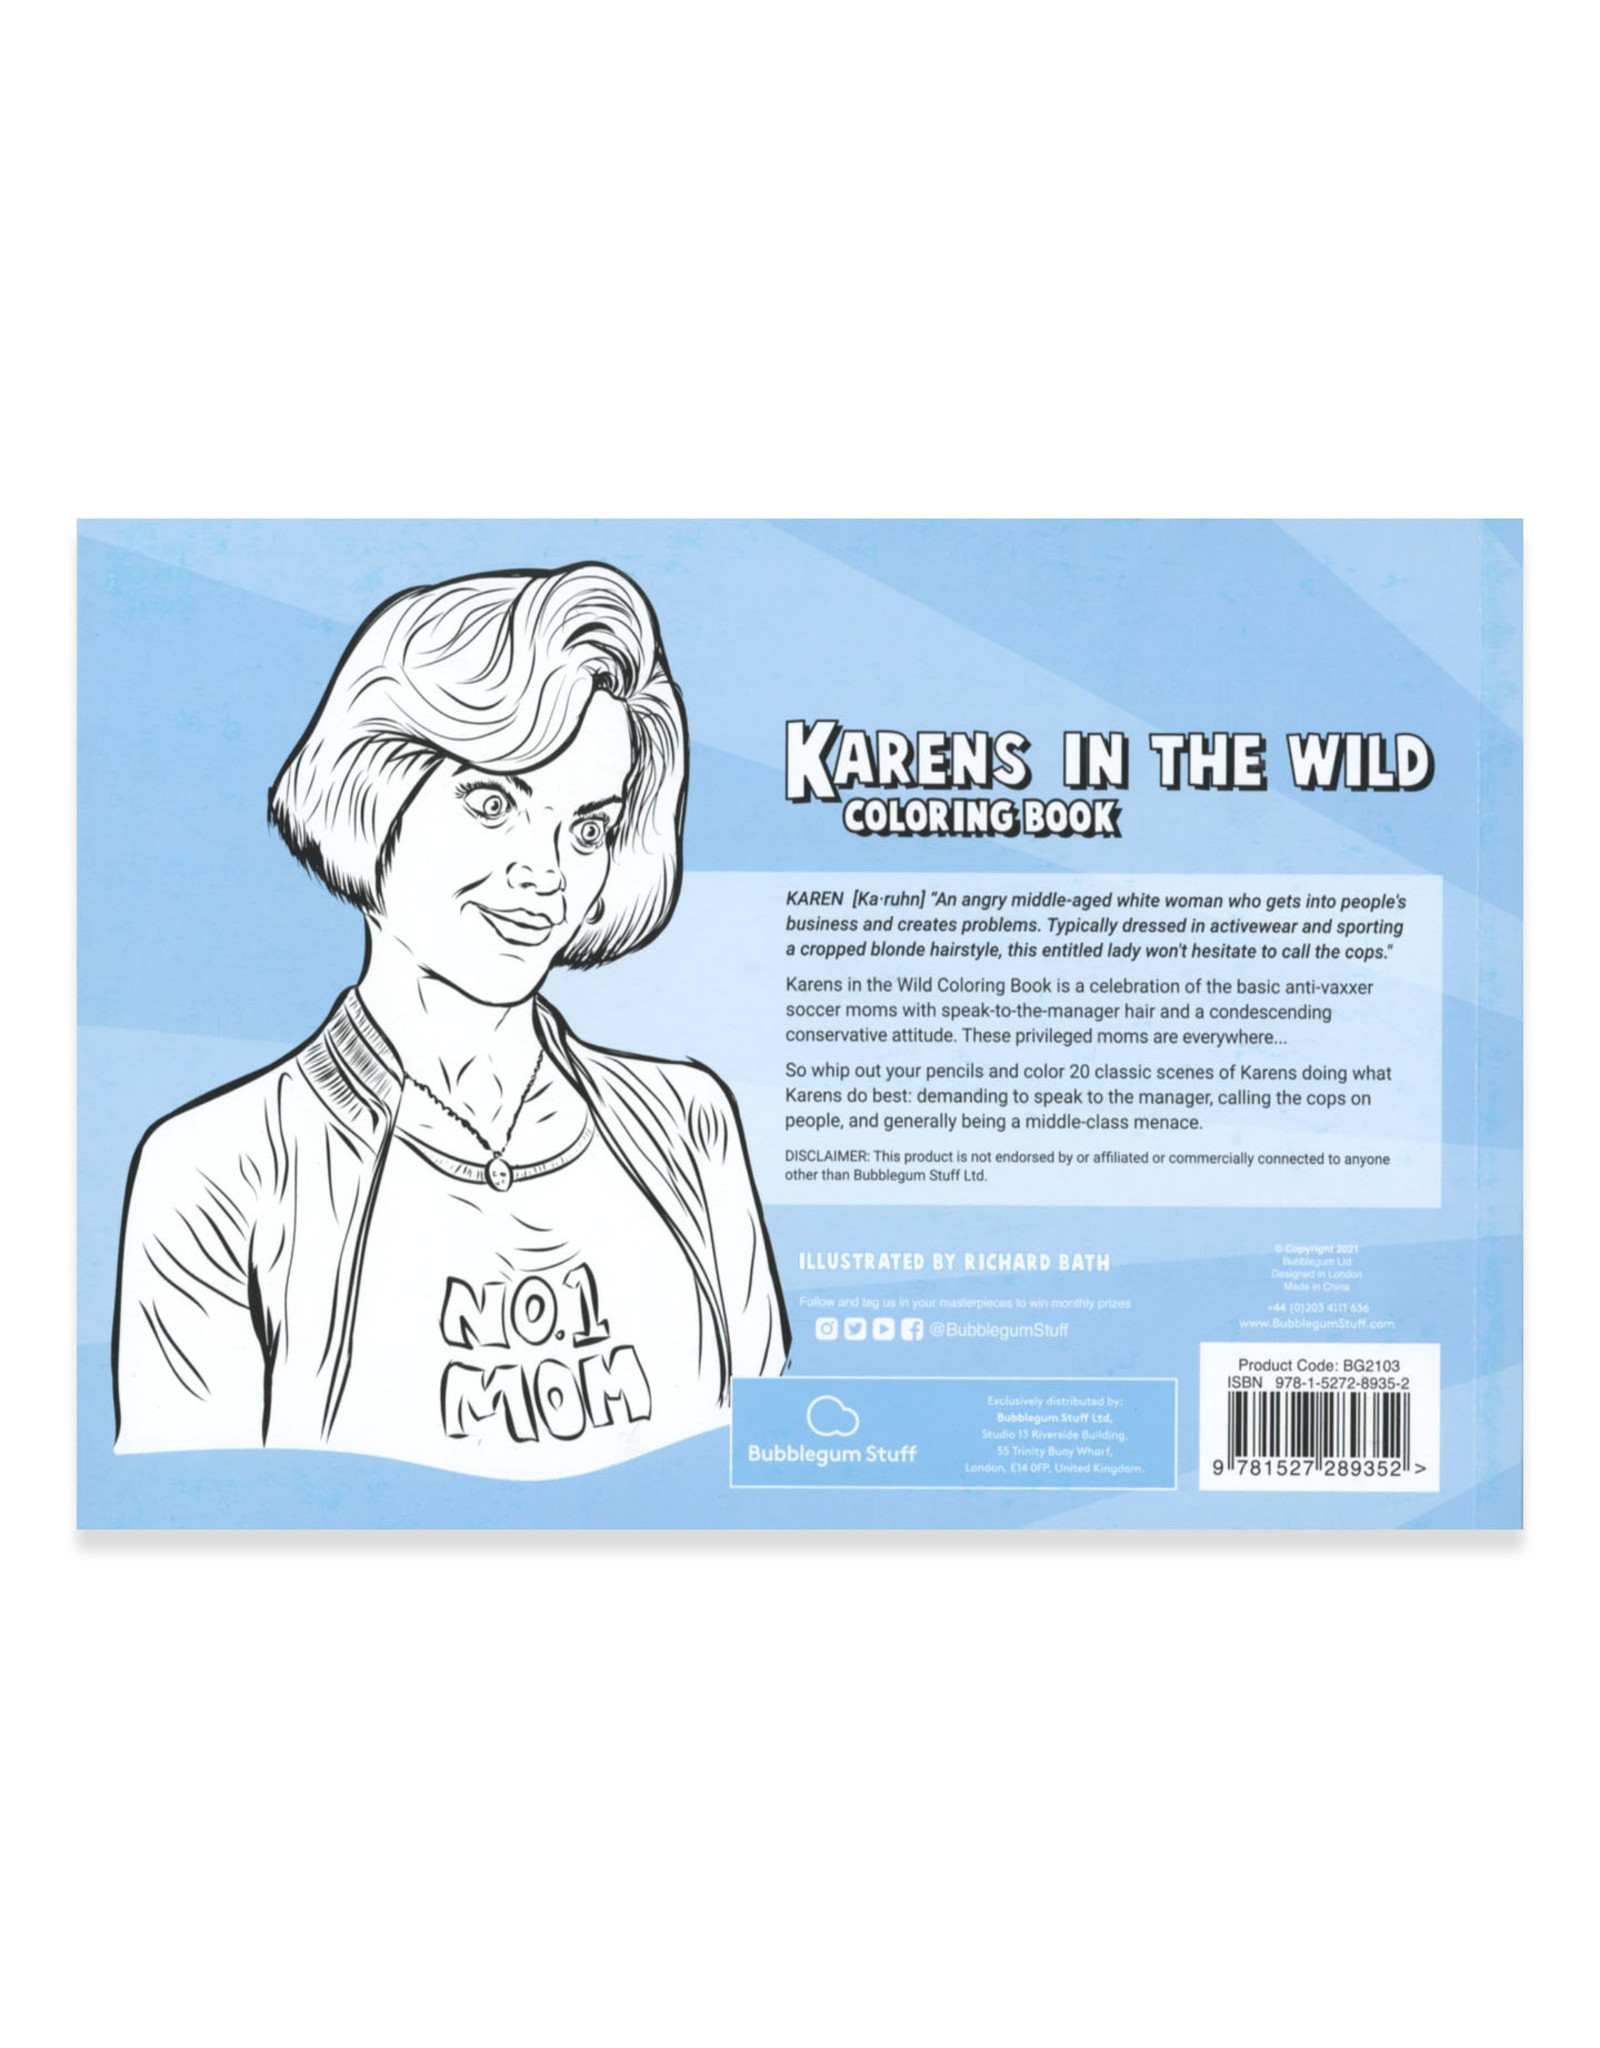 Karens in the Wild Coloring Book